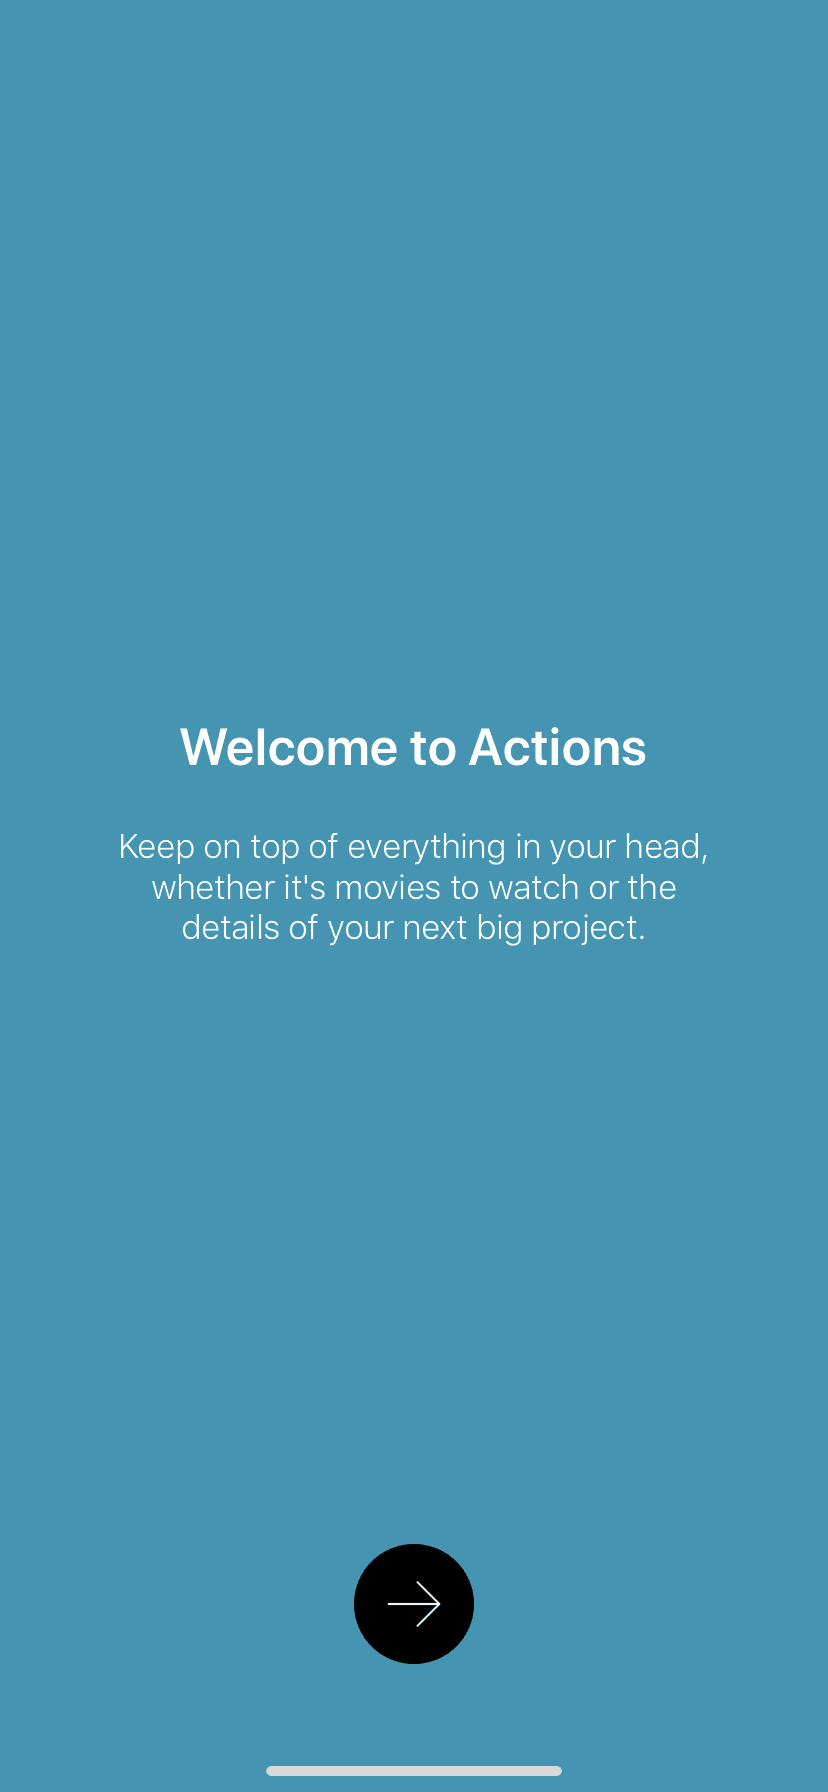 Welcome on iOS by Actions